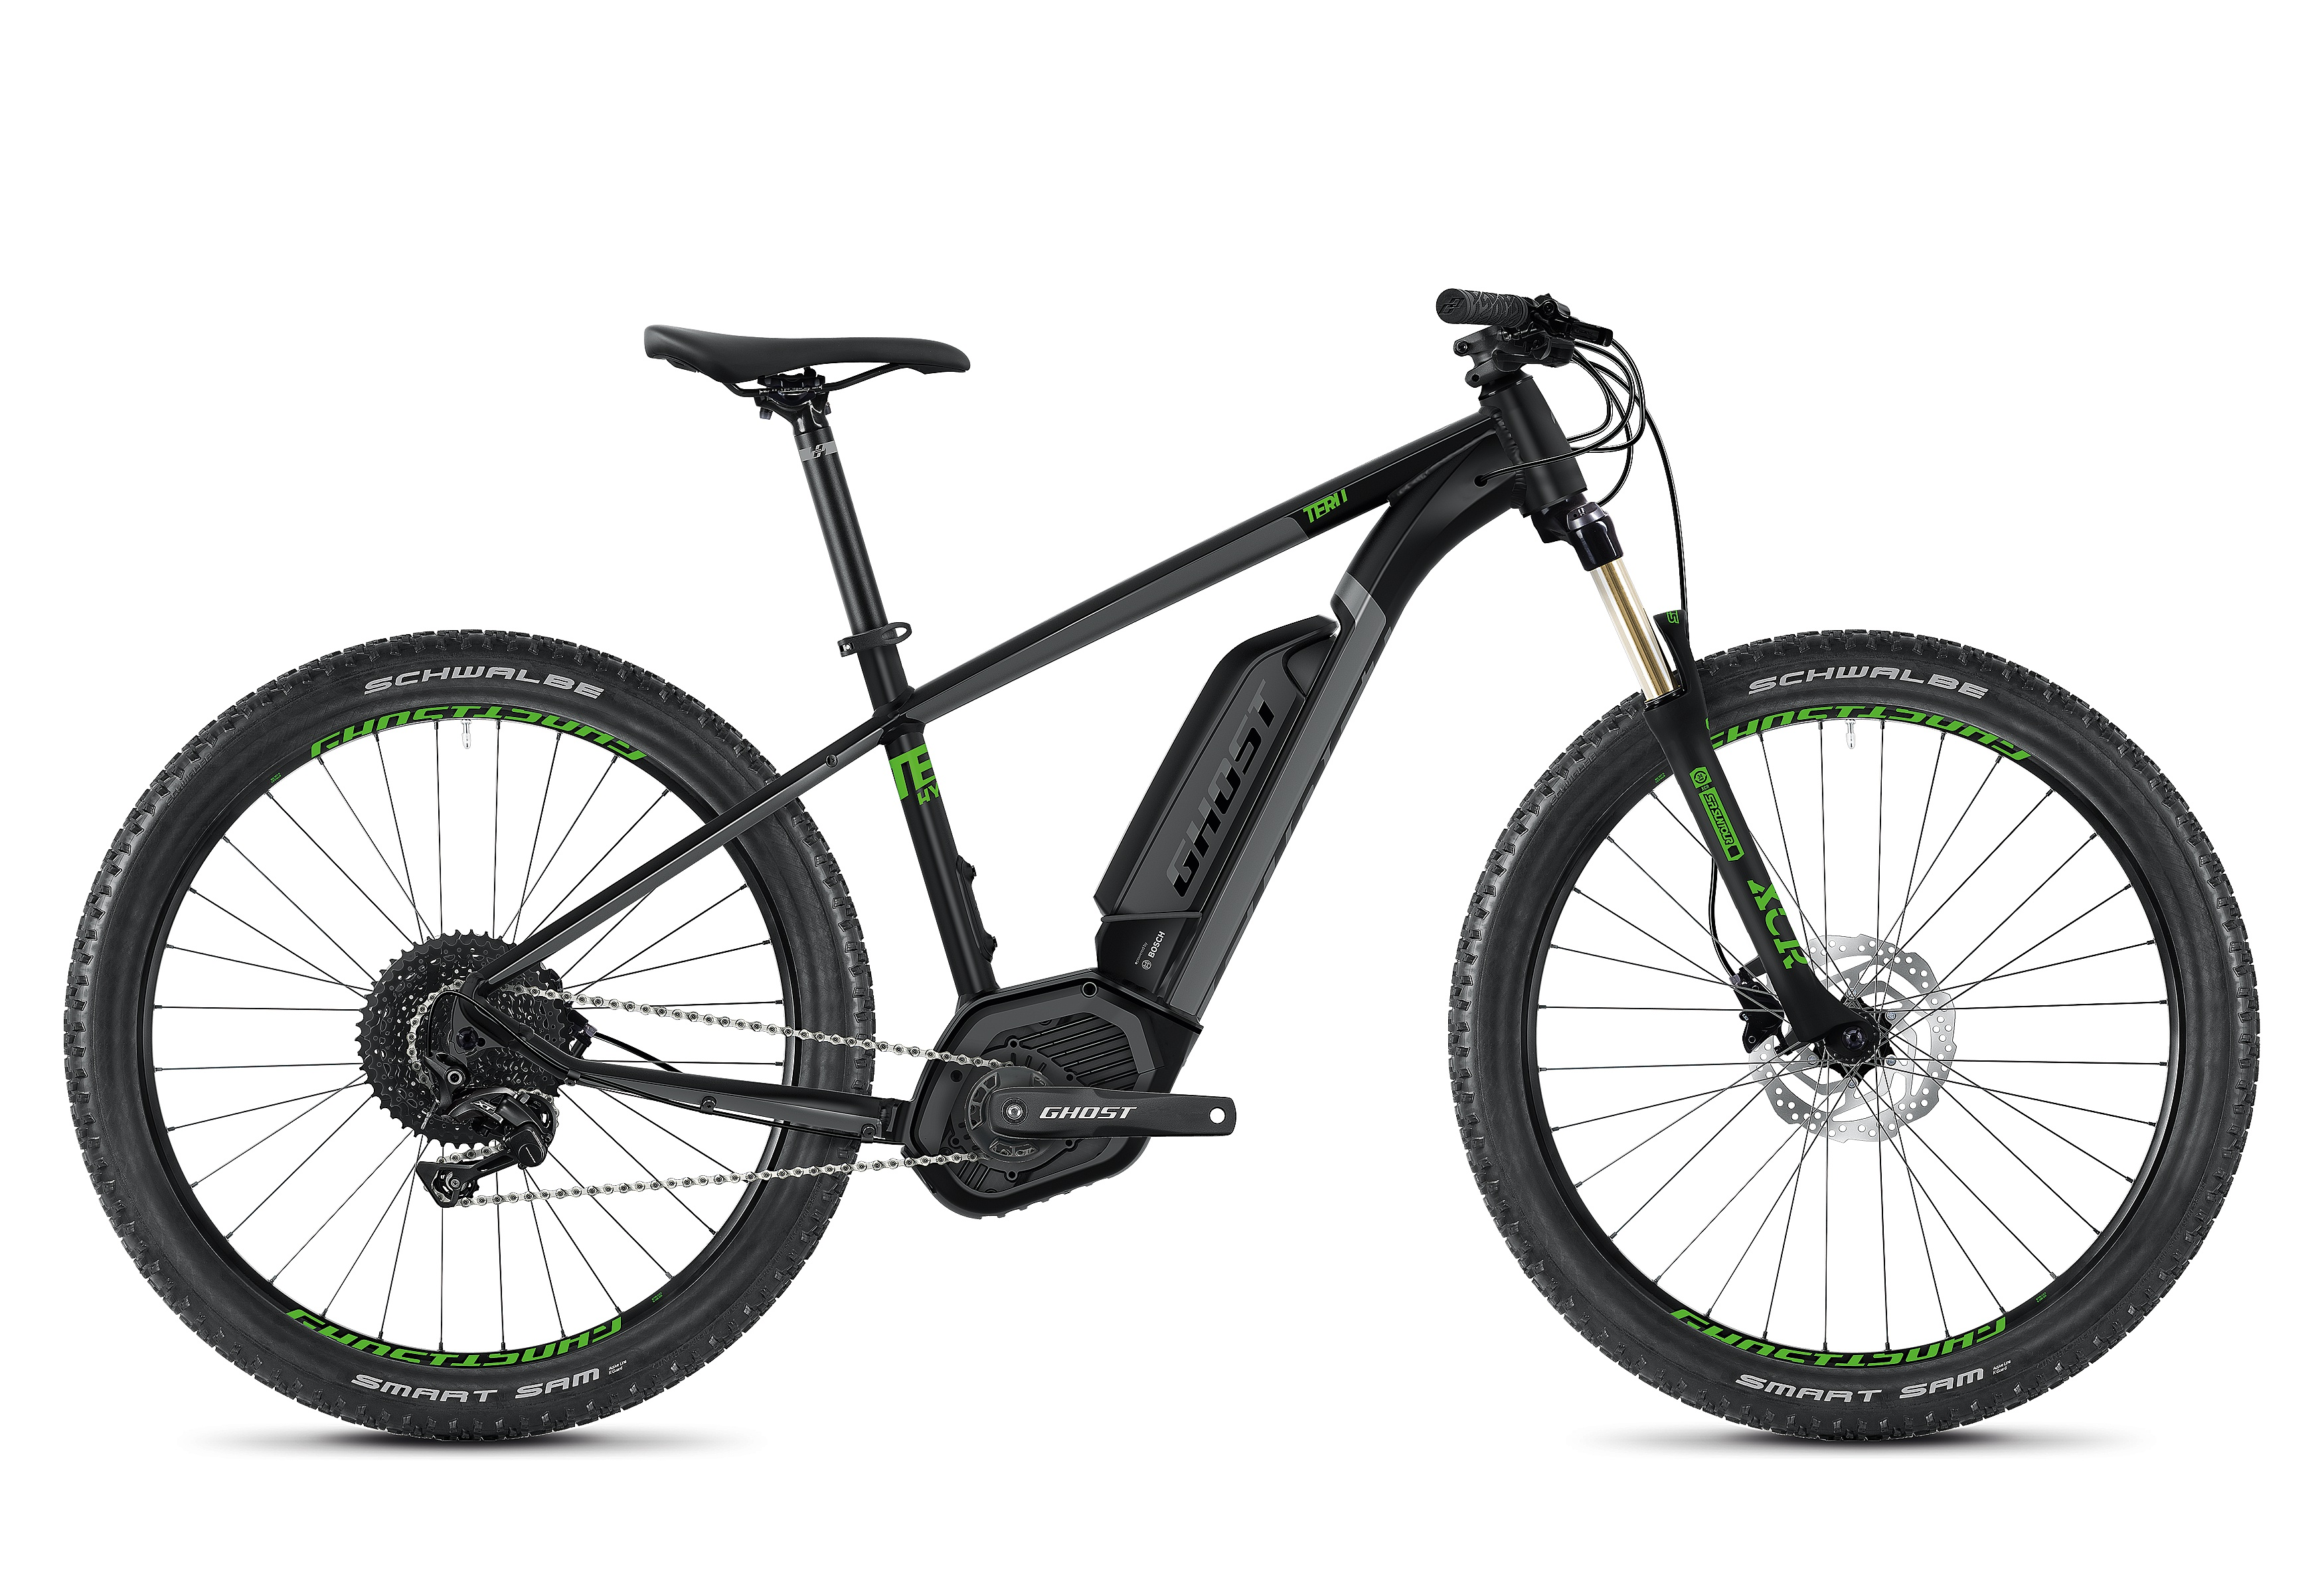 Elektrokolo Ghost Teru B4.7+ - Jet Black/Urban Gray/Riot Green XL (185-200cm)